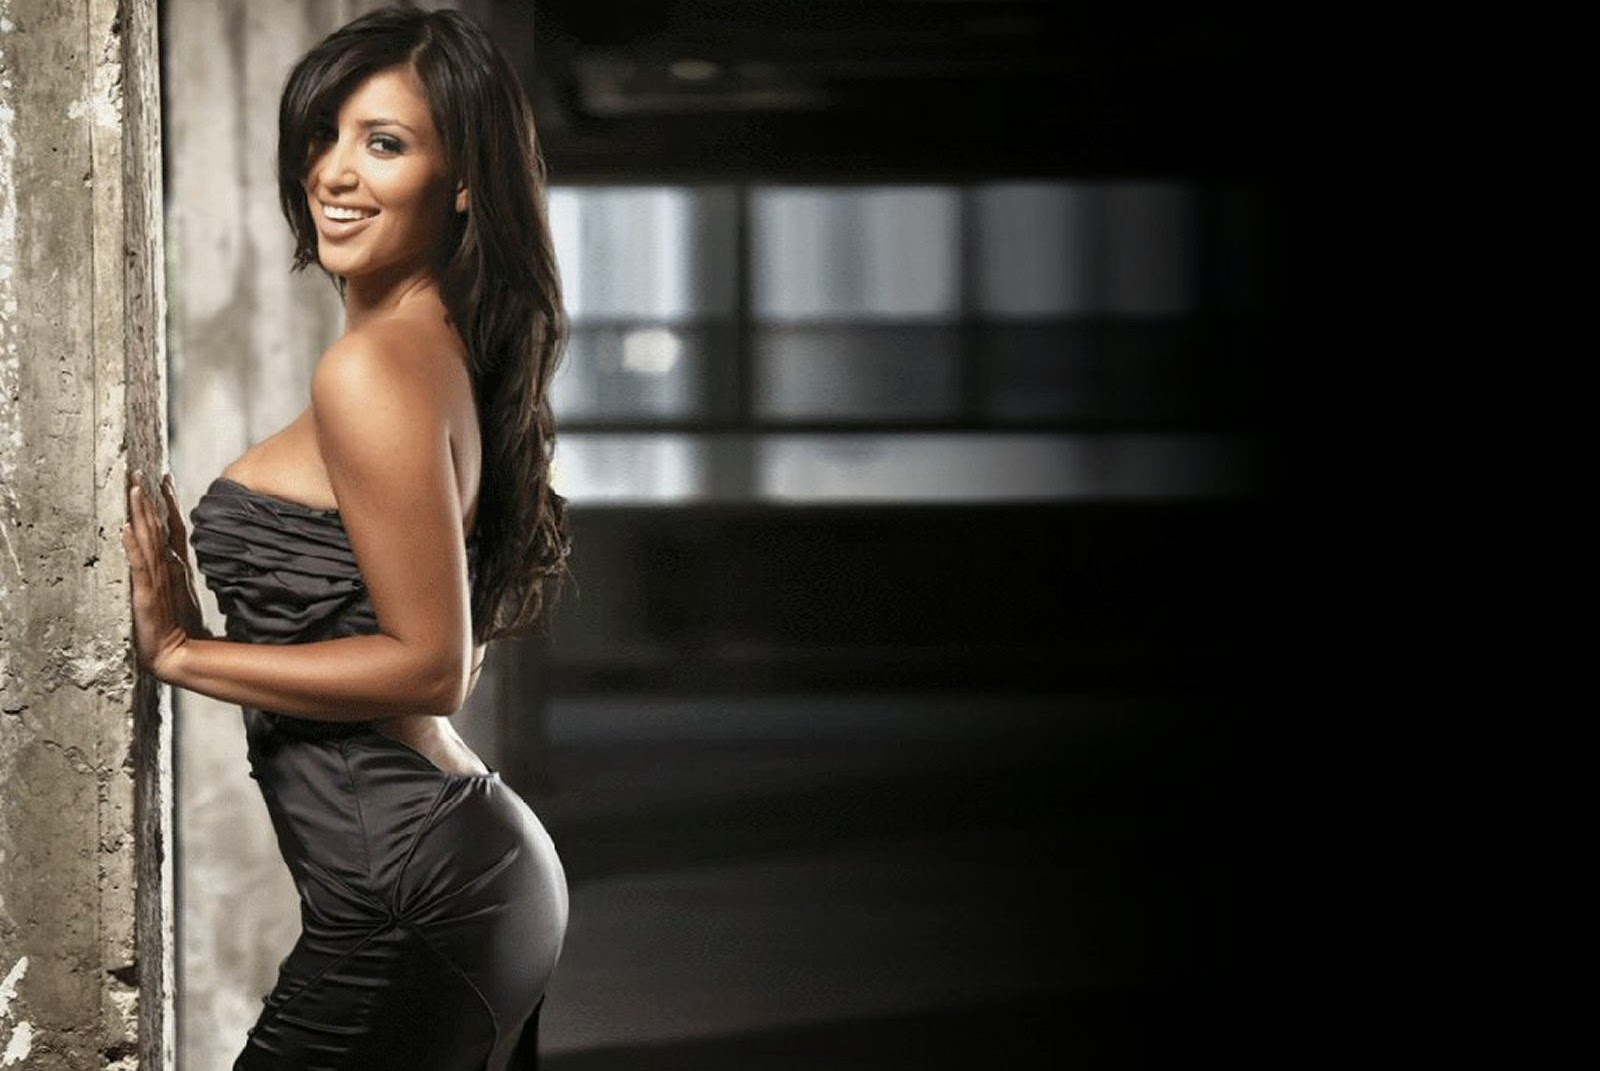 Kim Kardashian Hot 2014 on 1071 html